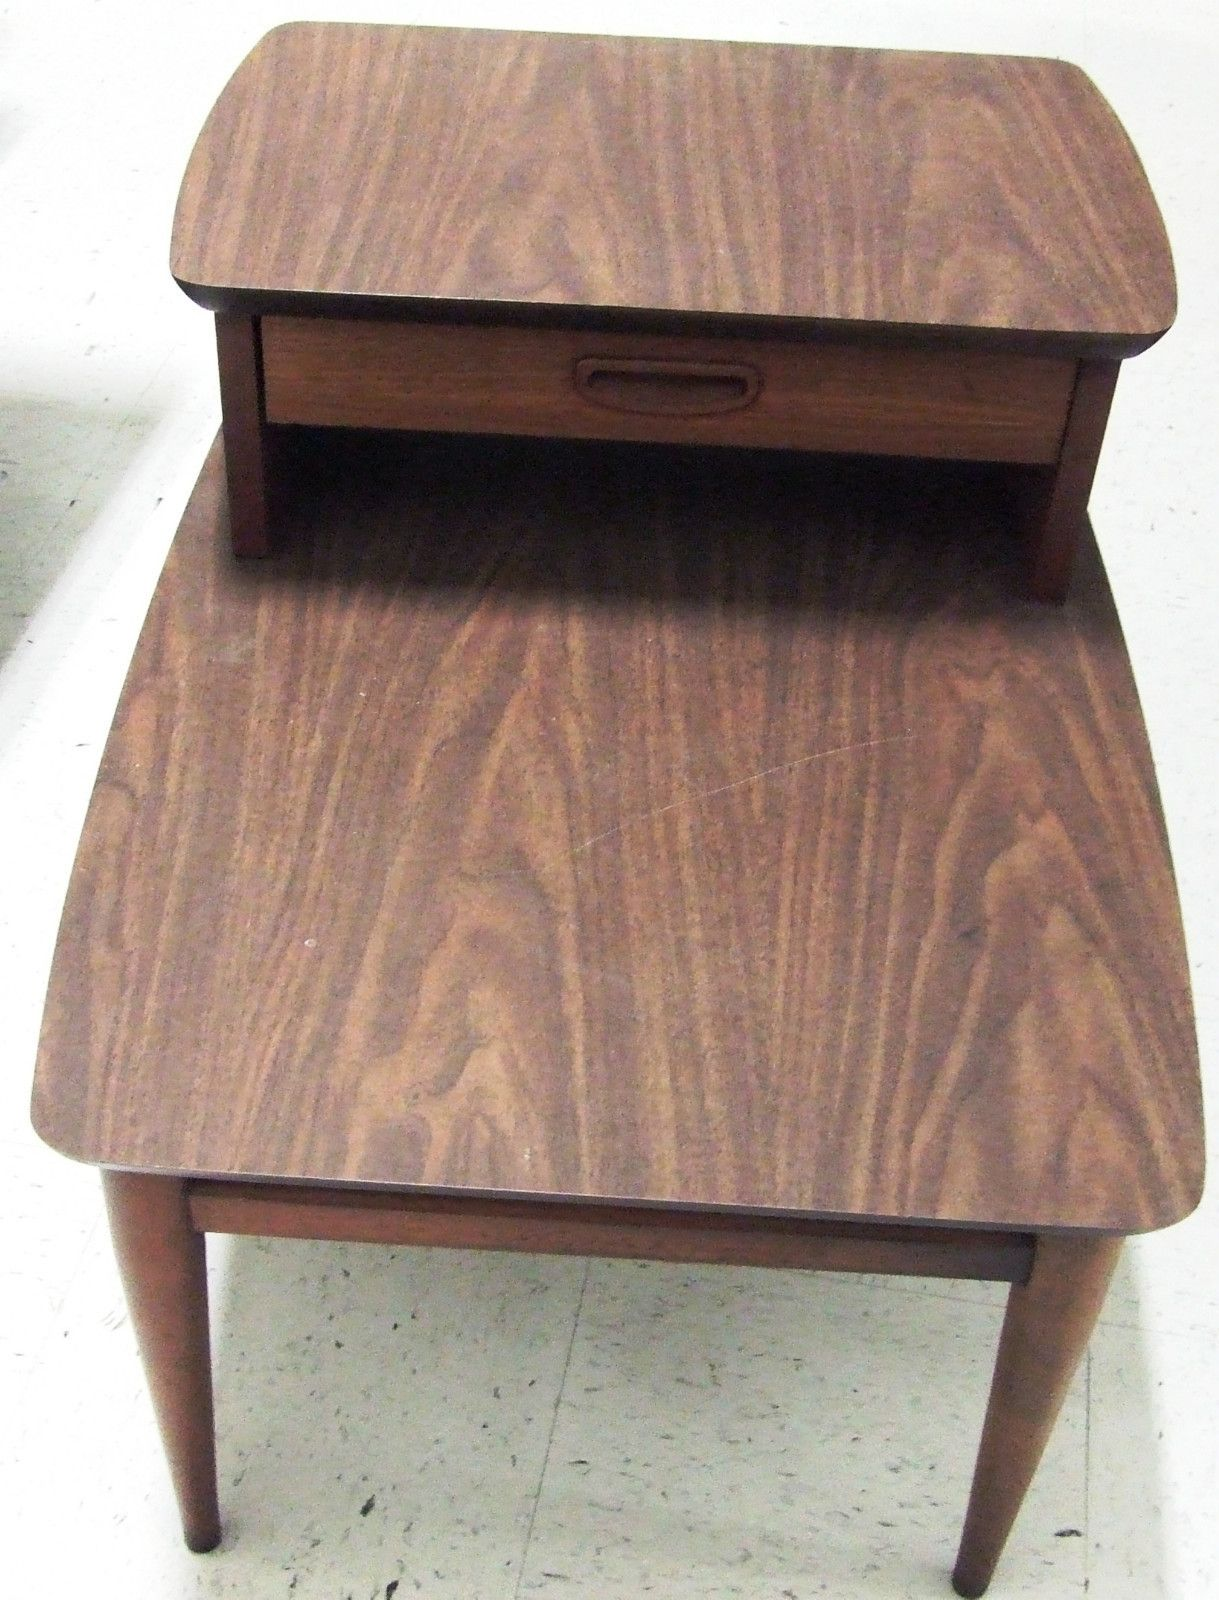 Lane Mid Century Modern 2 Tier Side Table With Drawer Walnut Veneer Finish Ebay Side Table With Drawer Walnut Veneer Side Table